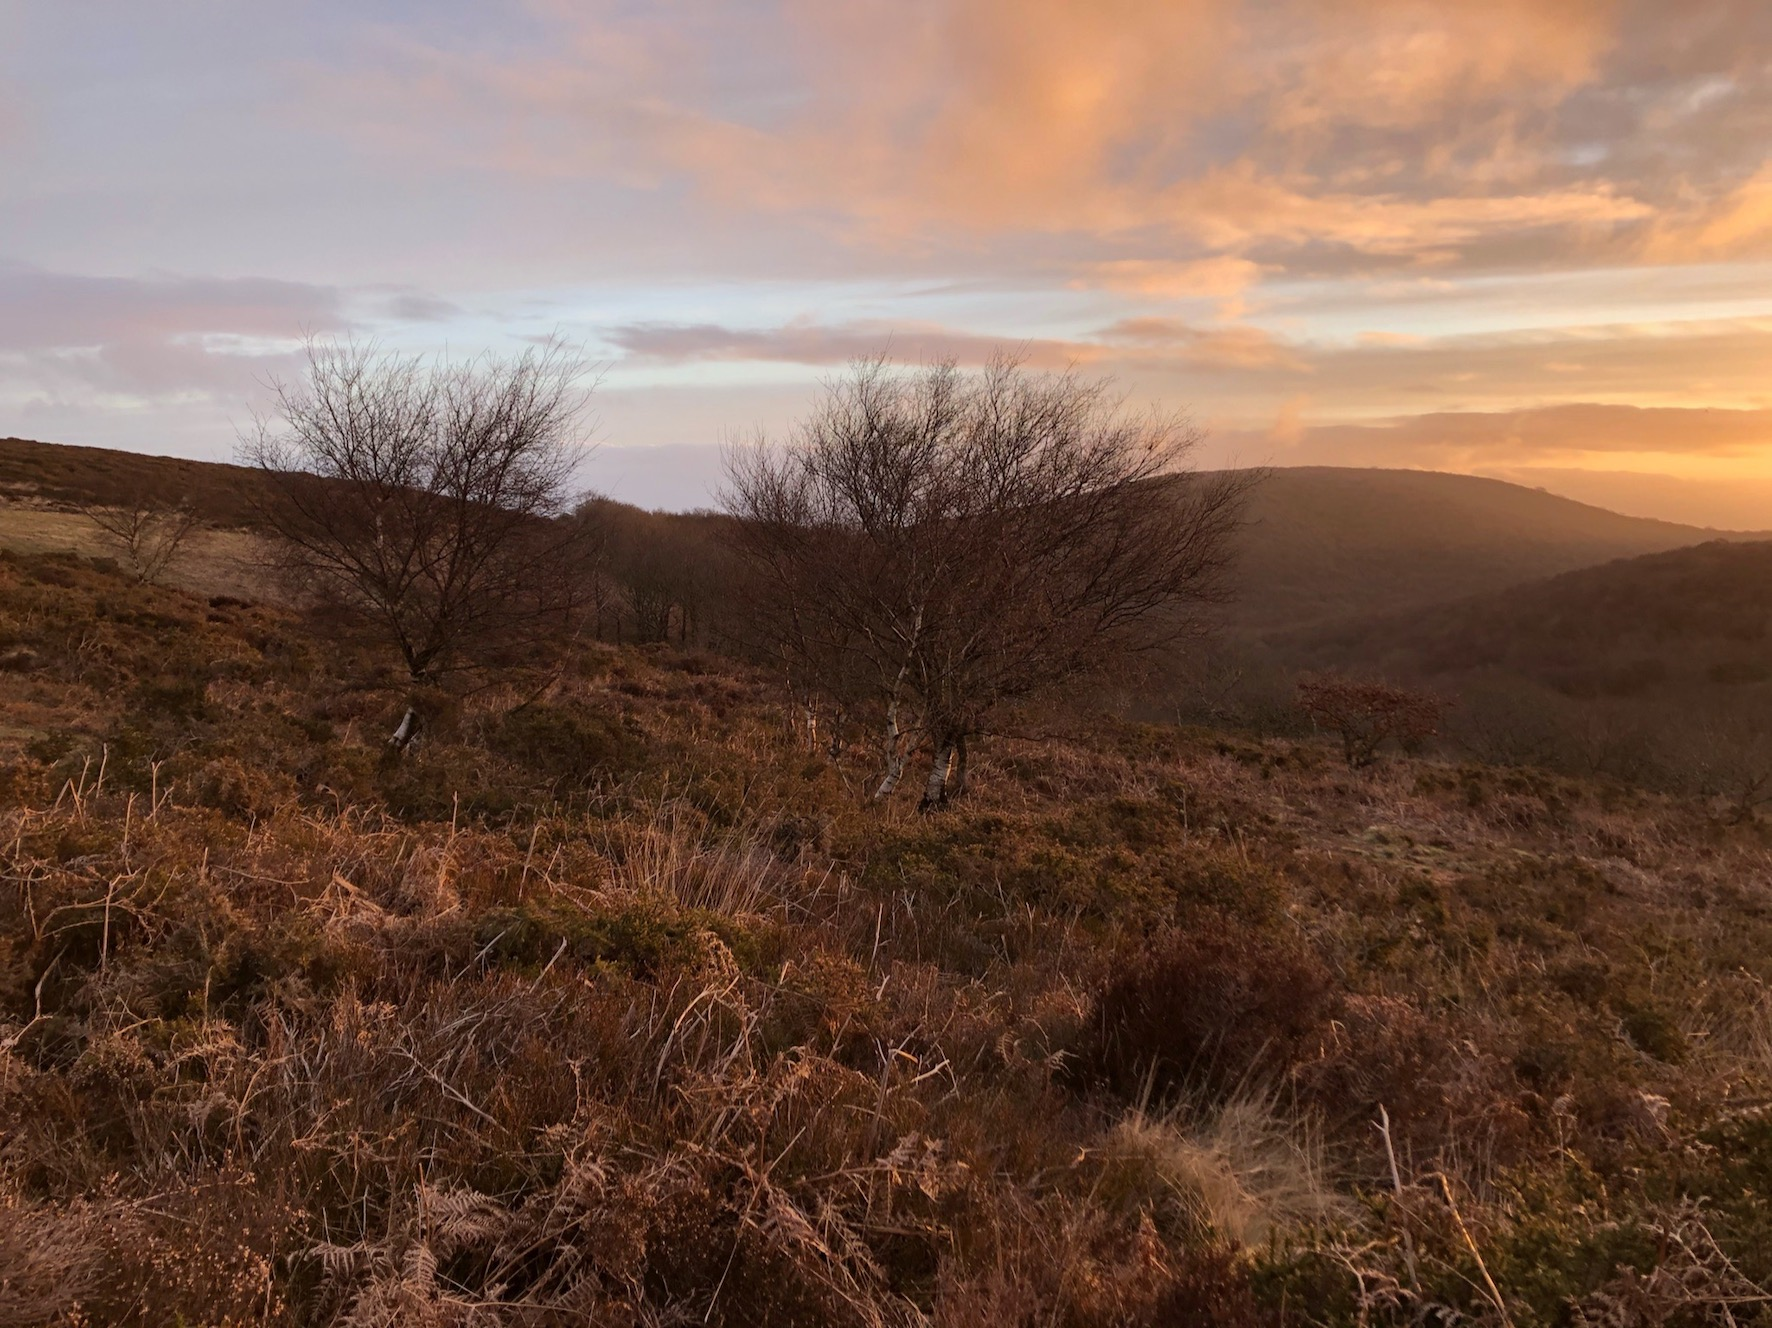 On the Quantocks at dawn for the deer count